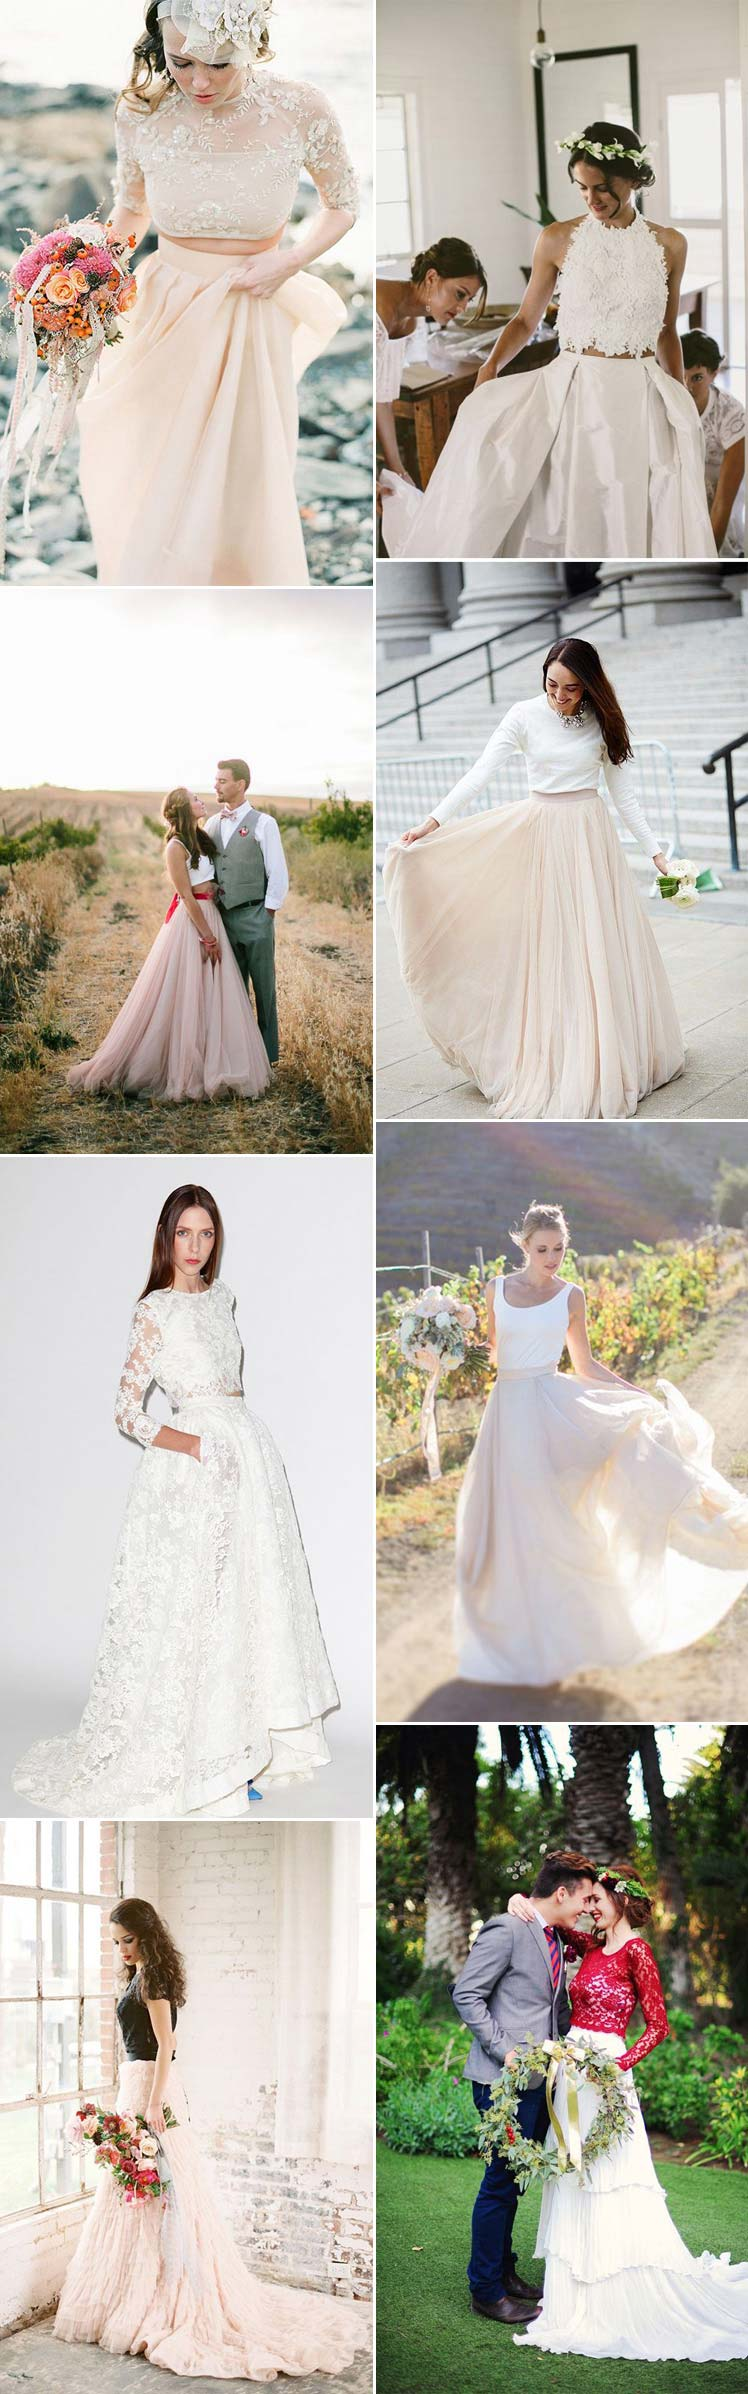 stunning skirt and top ideas for your bridal style